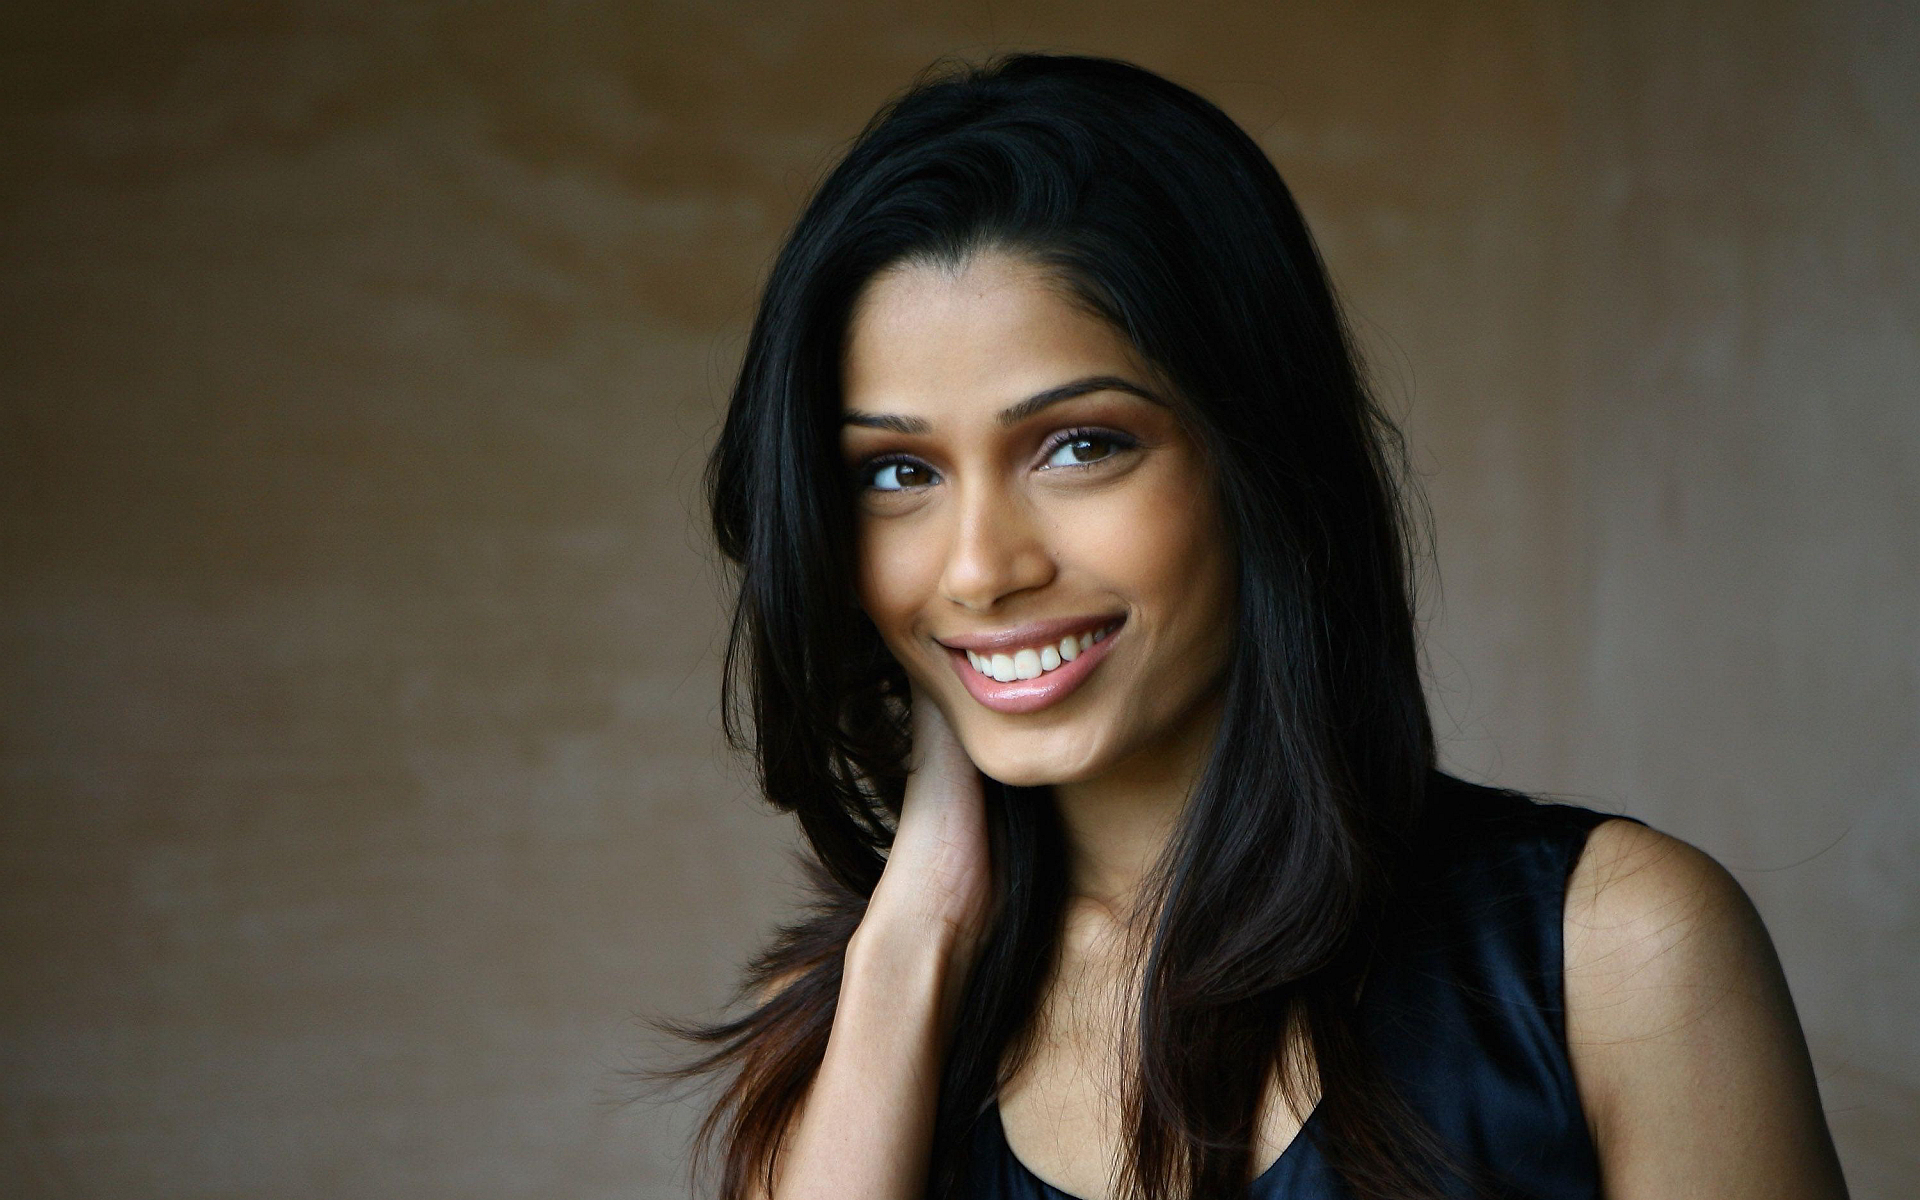 Freida Pinto Wallpapers Images Photos Pictures Backgrounds фрида пинто